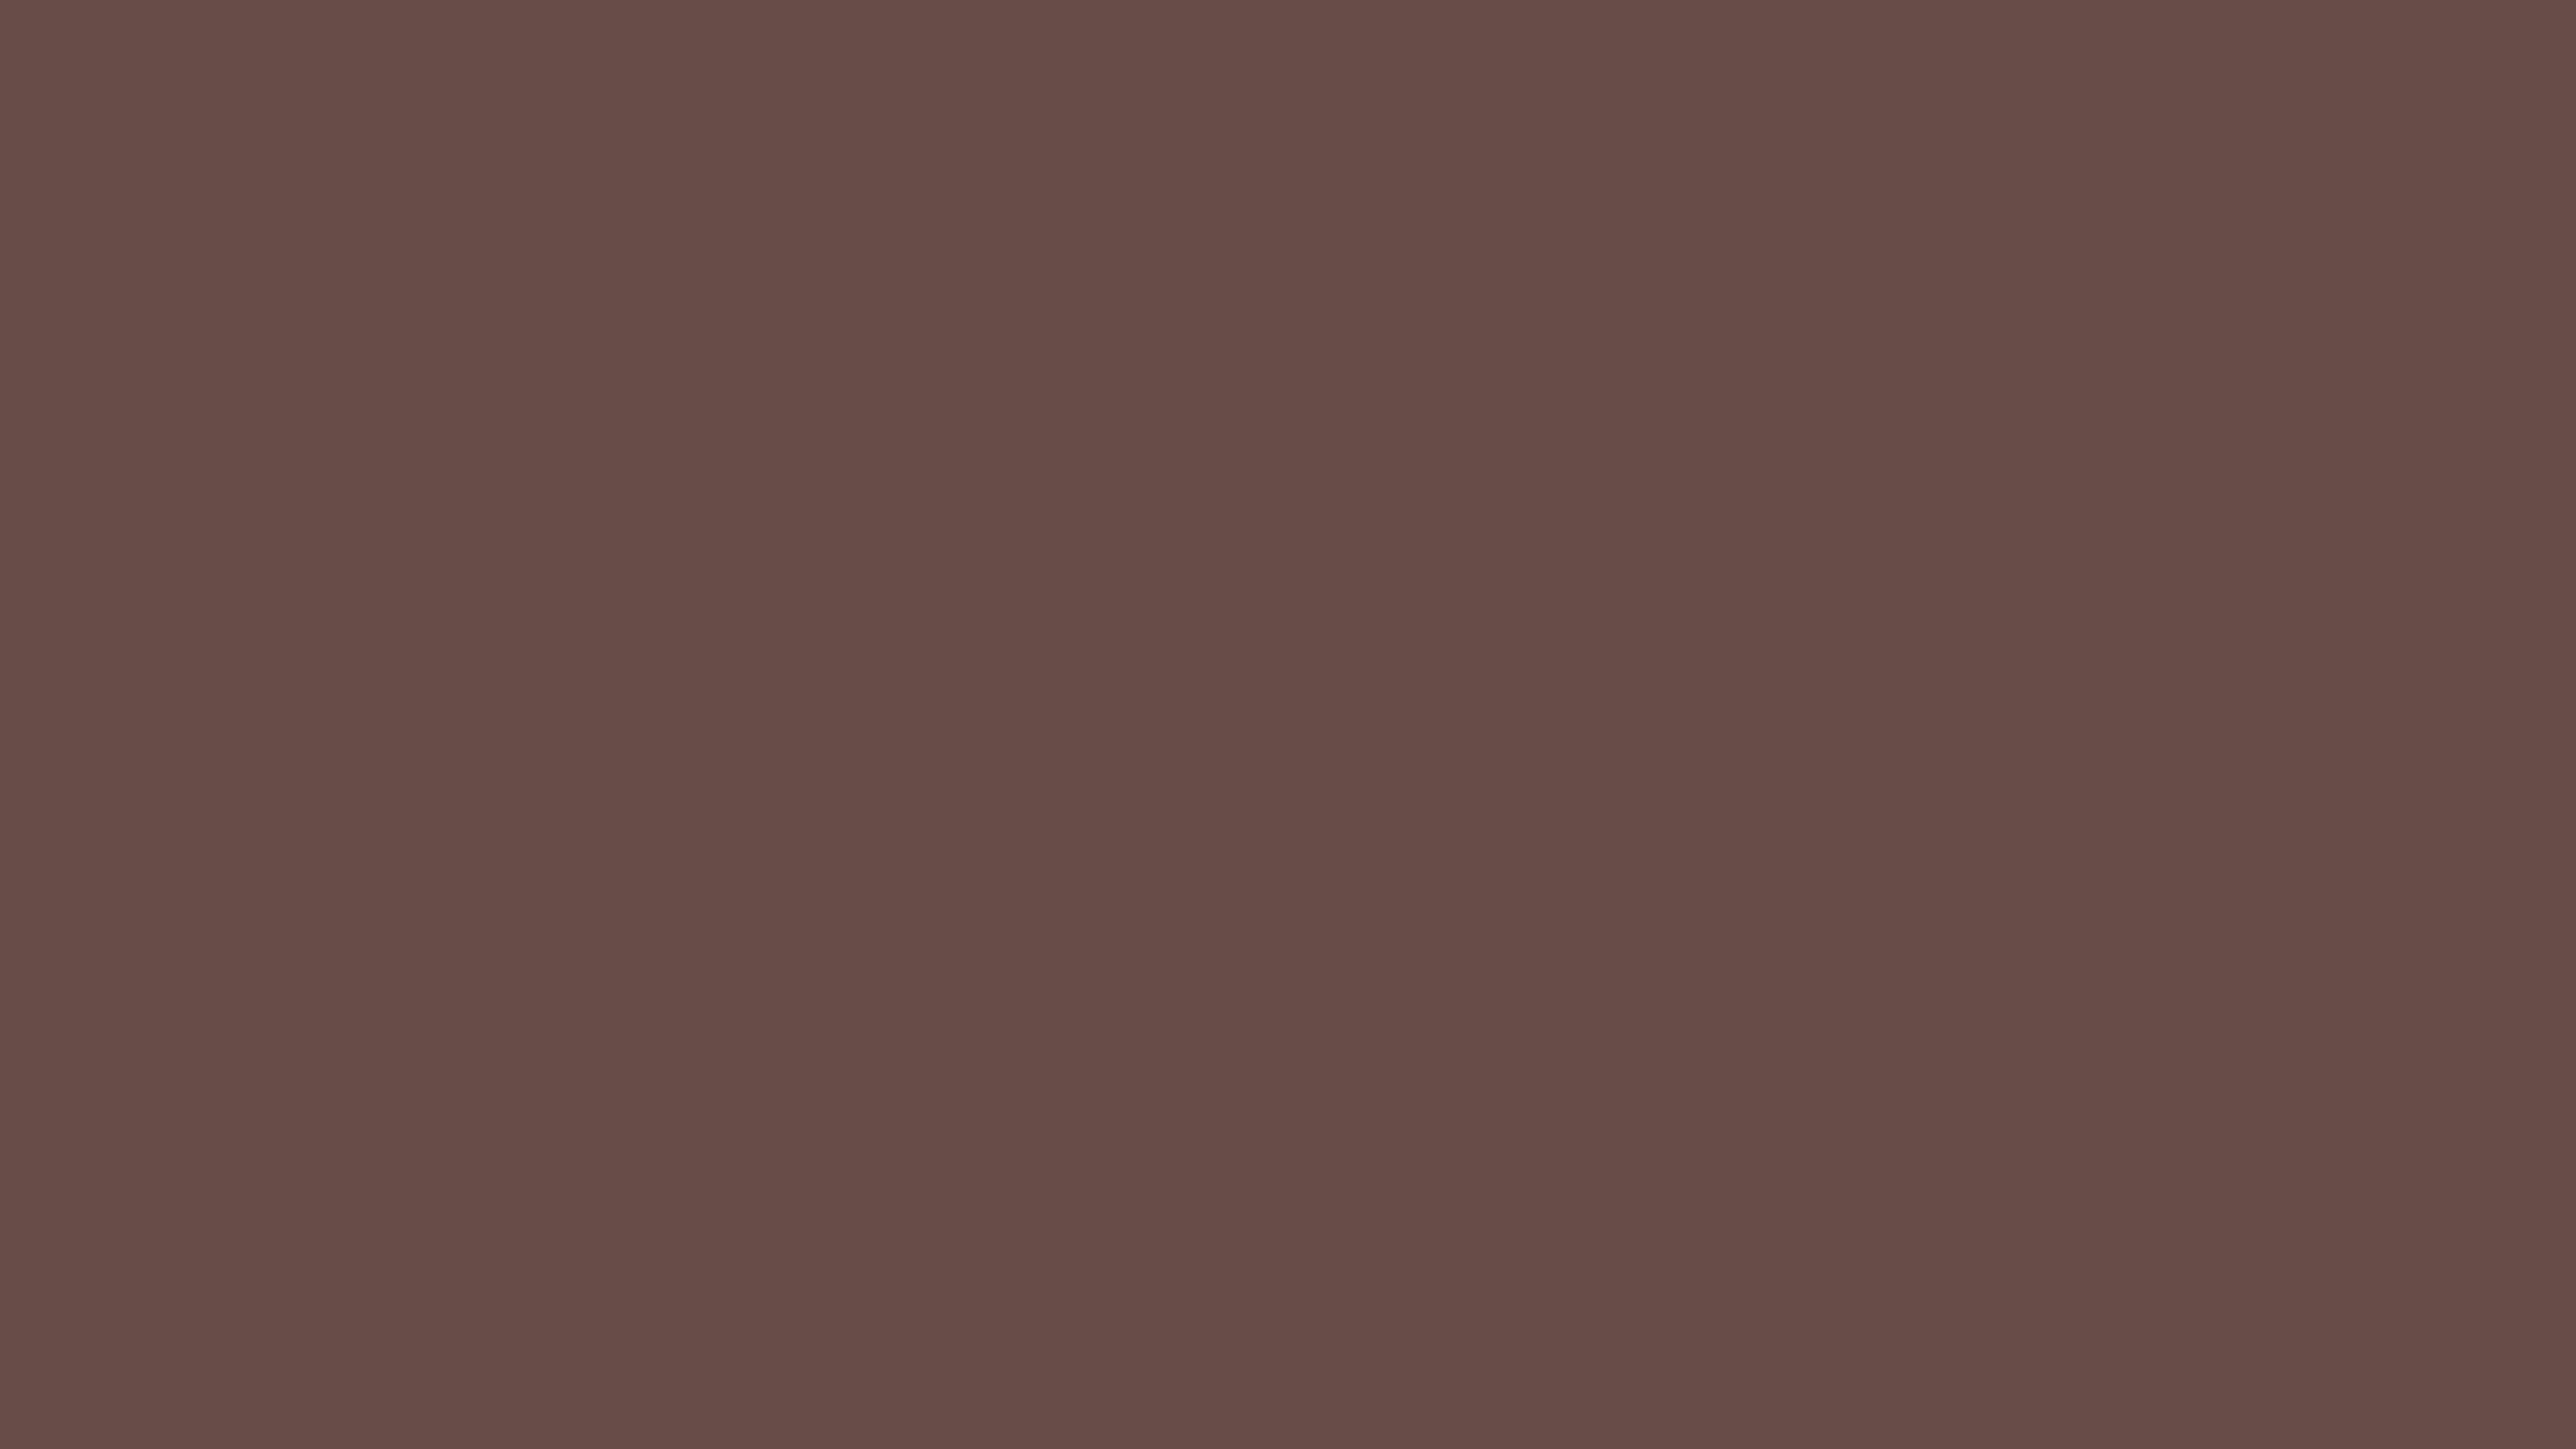 5120x2880 Medium Taupe Solid Color Background